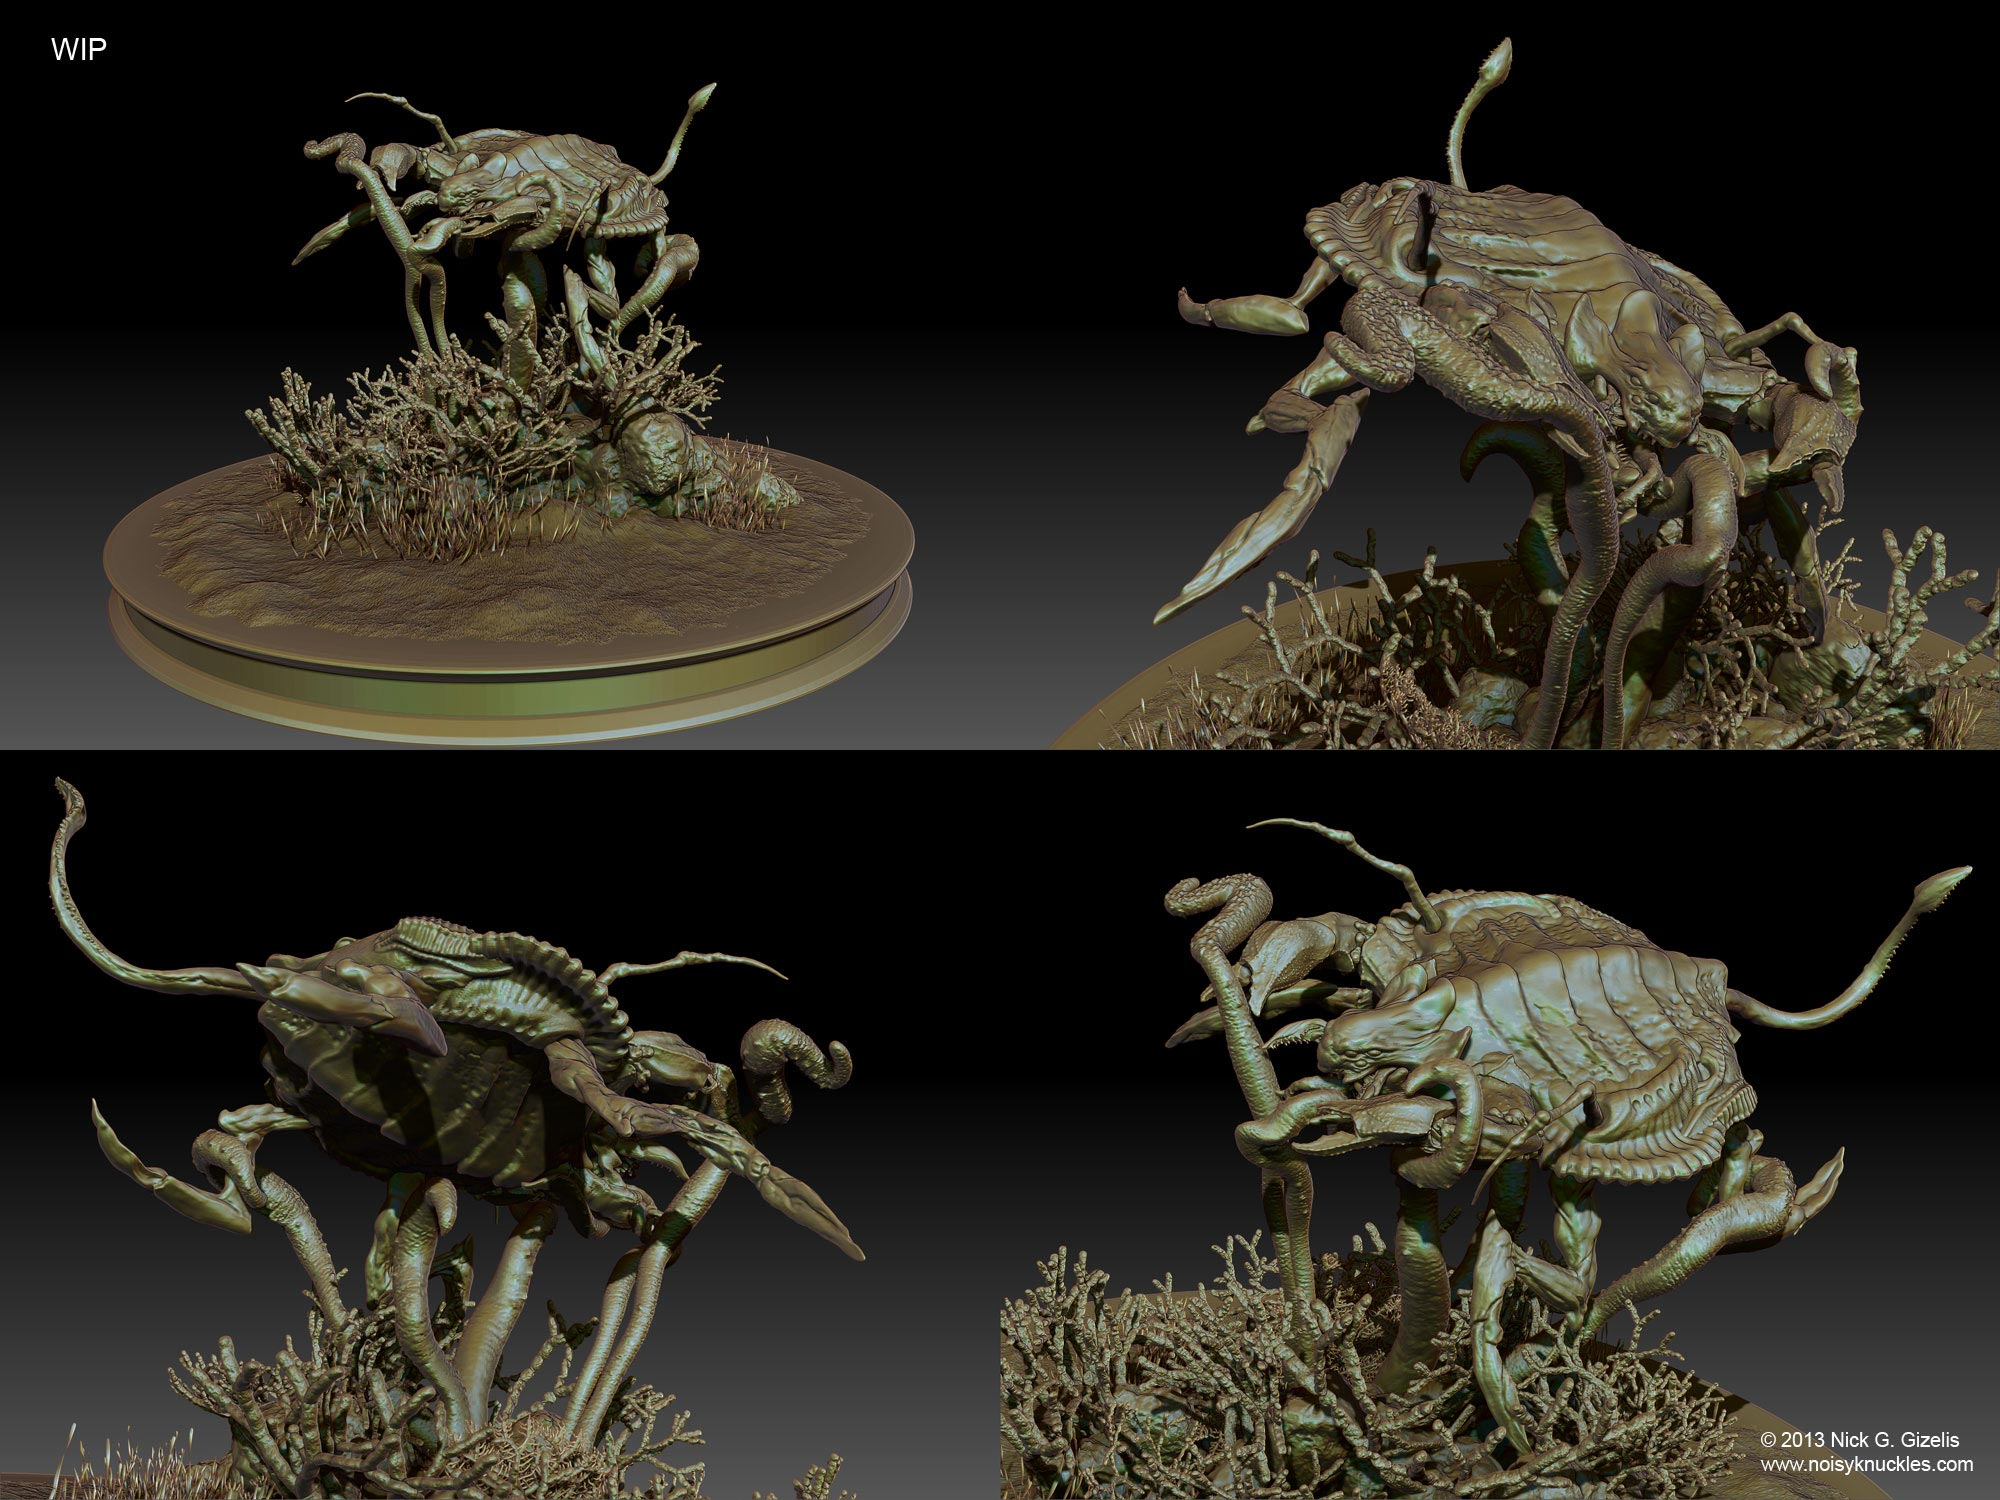 CREATURE_IN_DIORAMA_WIP_COMP.jpg